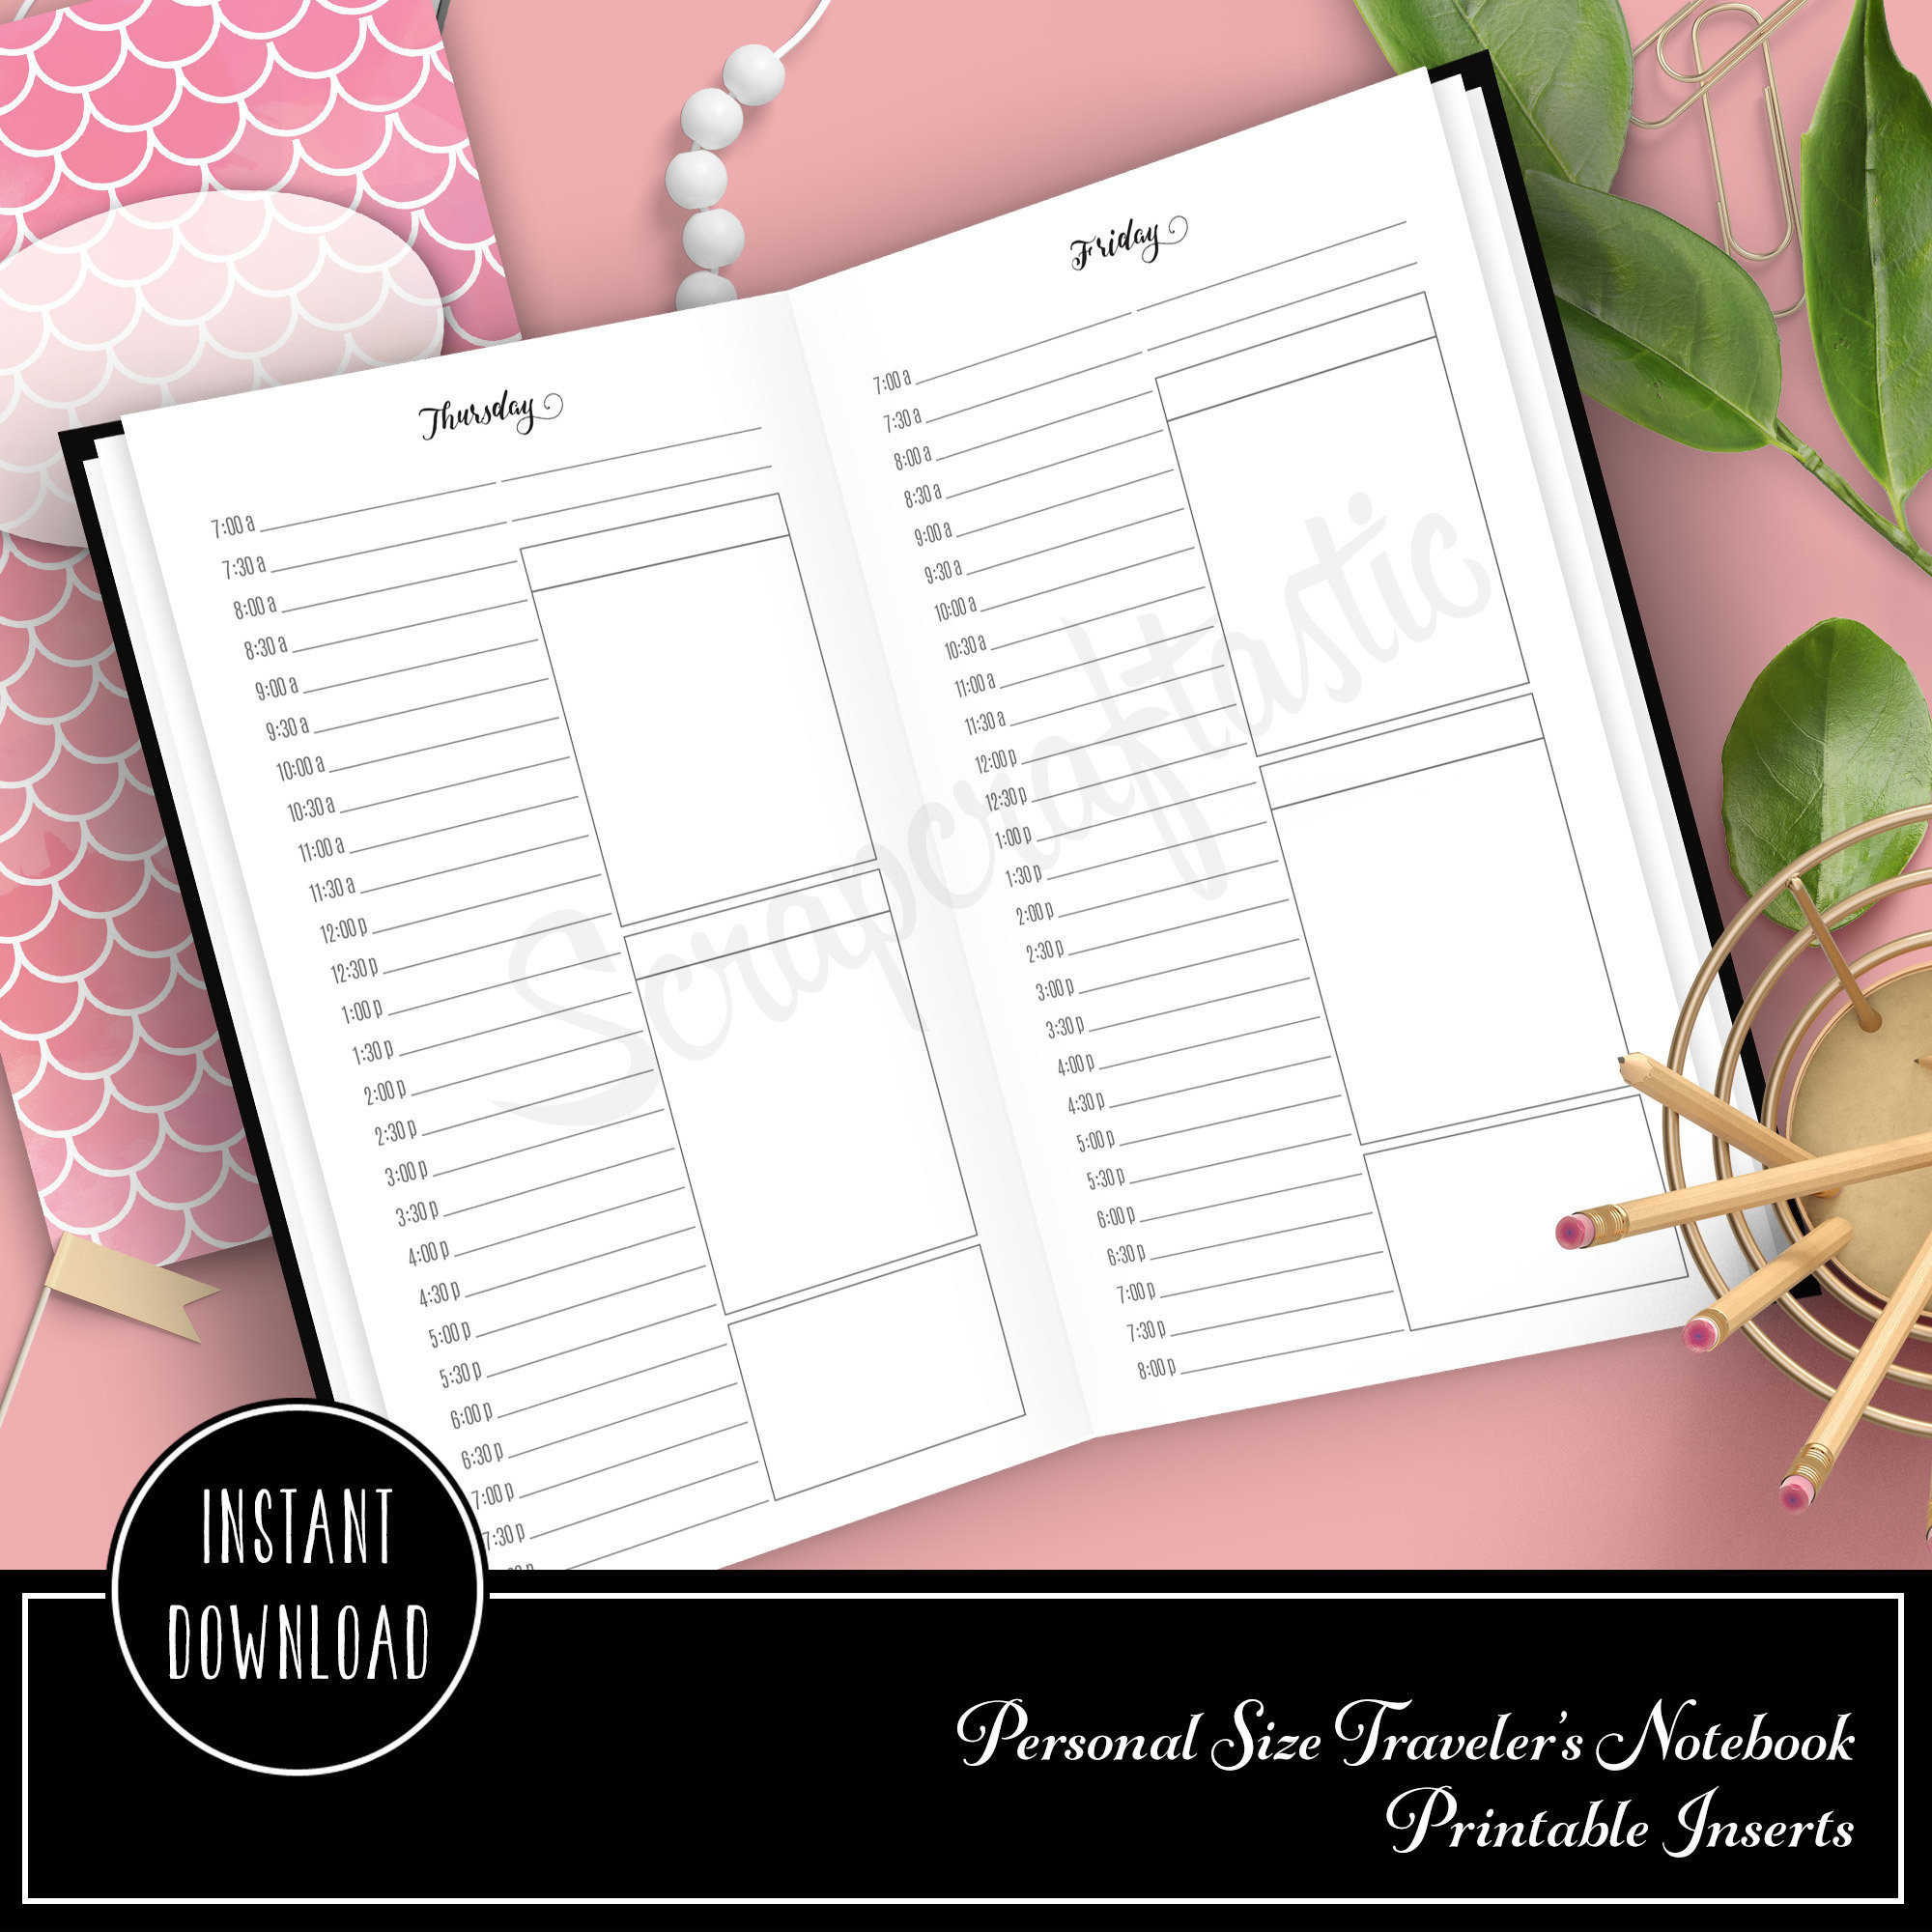 Full Month Notebook: Daily Personal Size with MO2P, WO1P Horizontal and DO1P Daily Schedule Pages Printable 09003